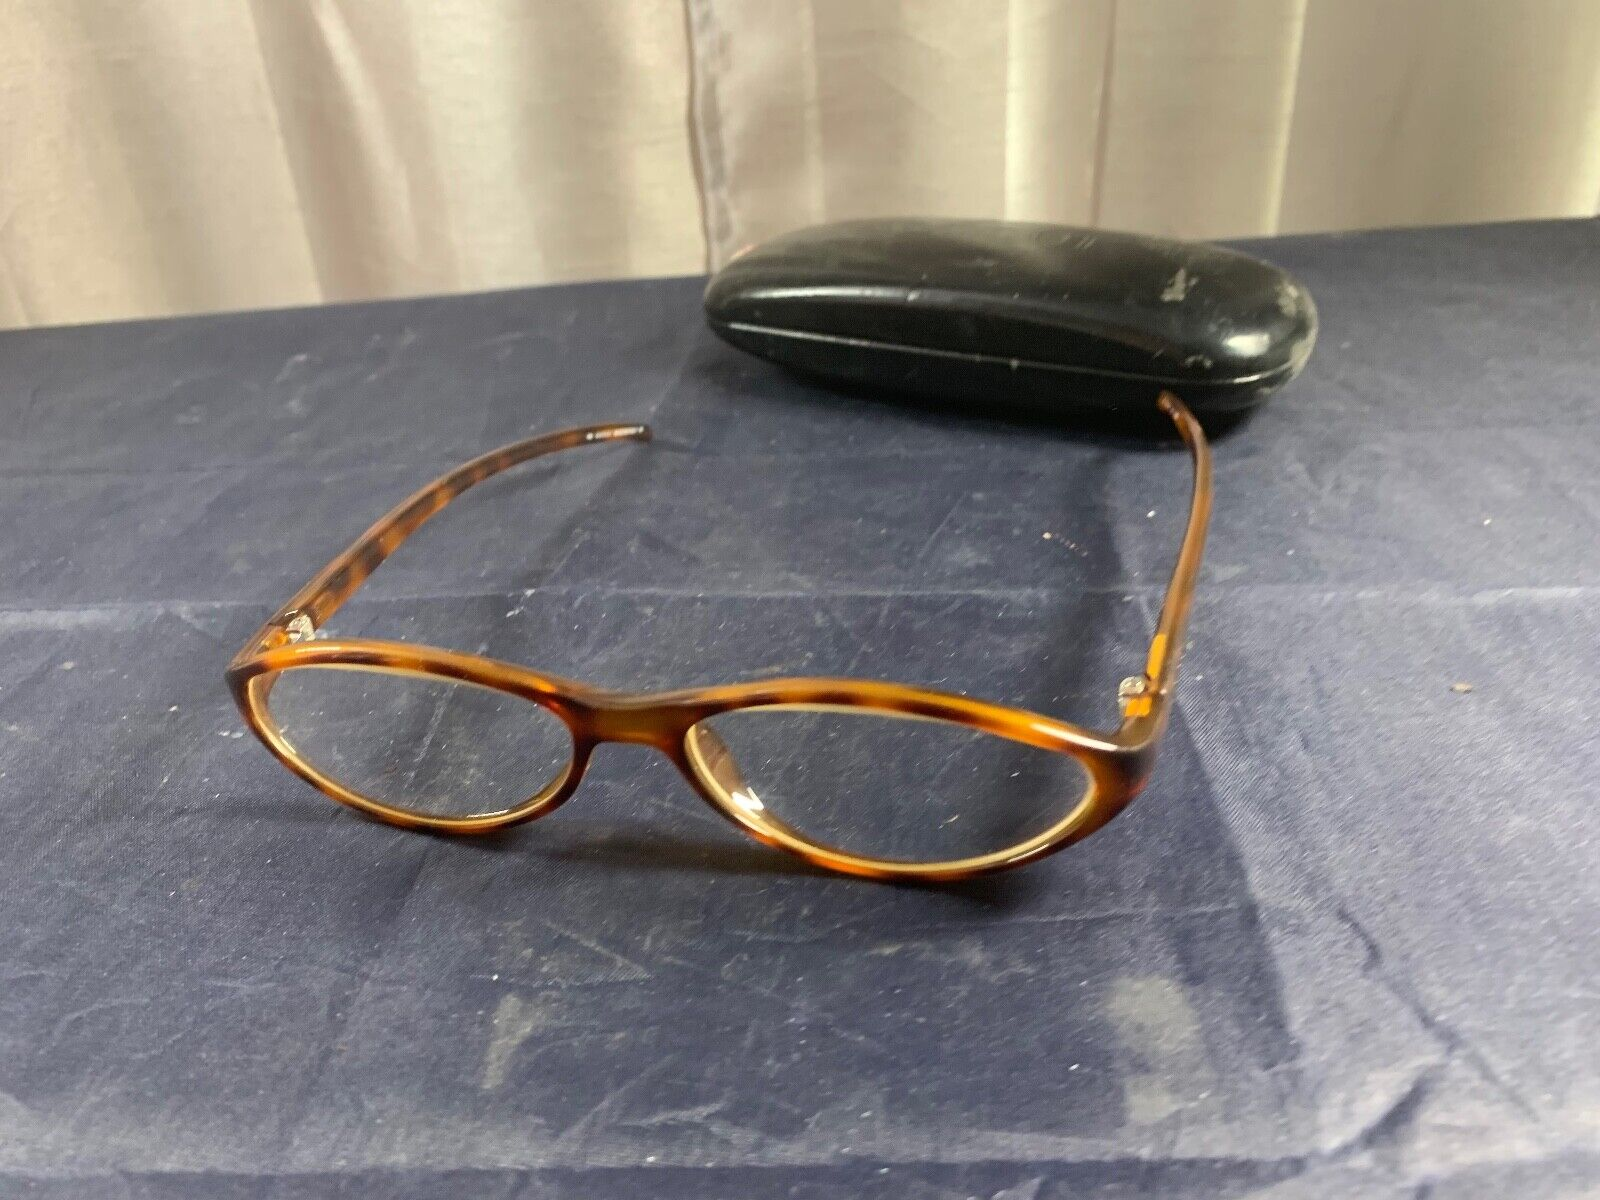 OLDER PAIR GUCCI READING GLASSES GQ 2497 130 3KB BEAT UP CASE - $12.99